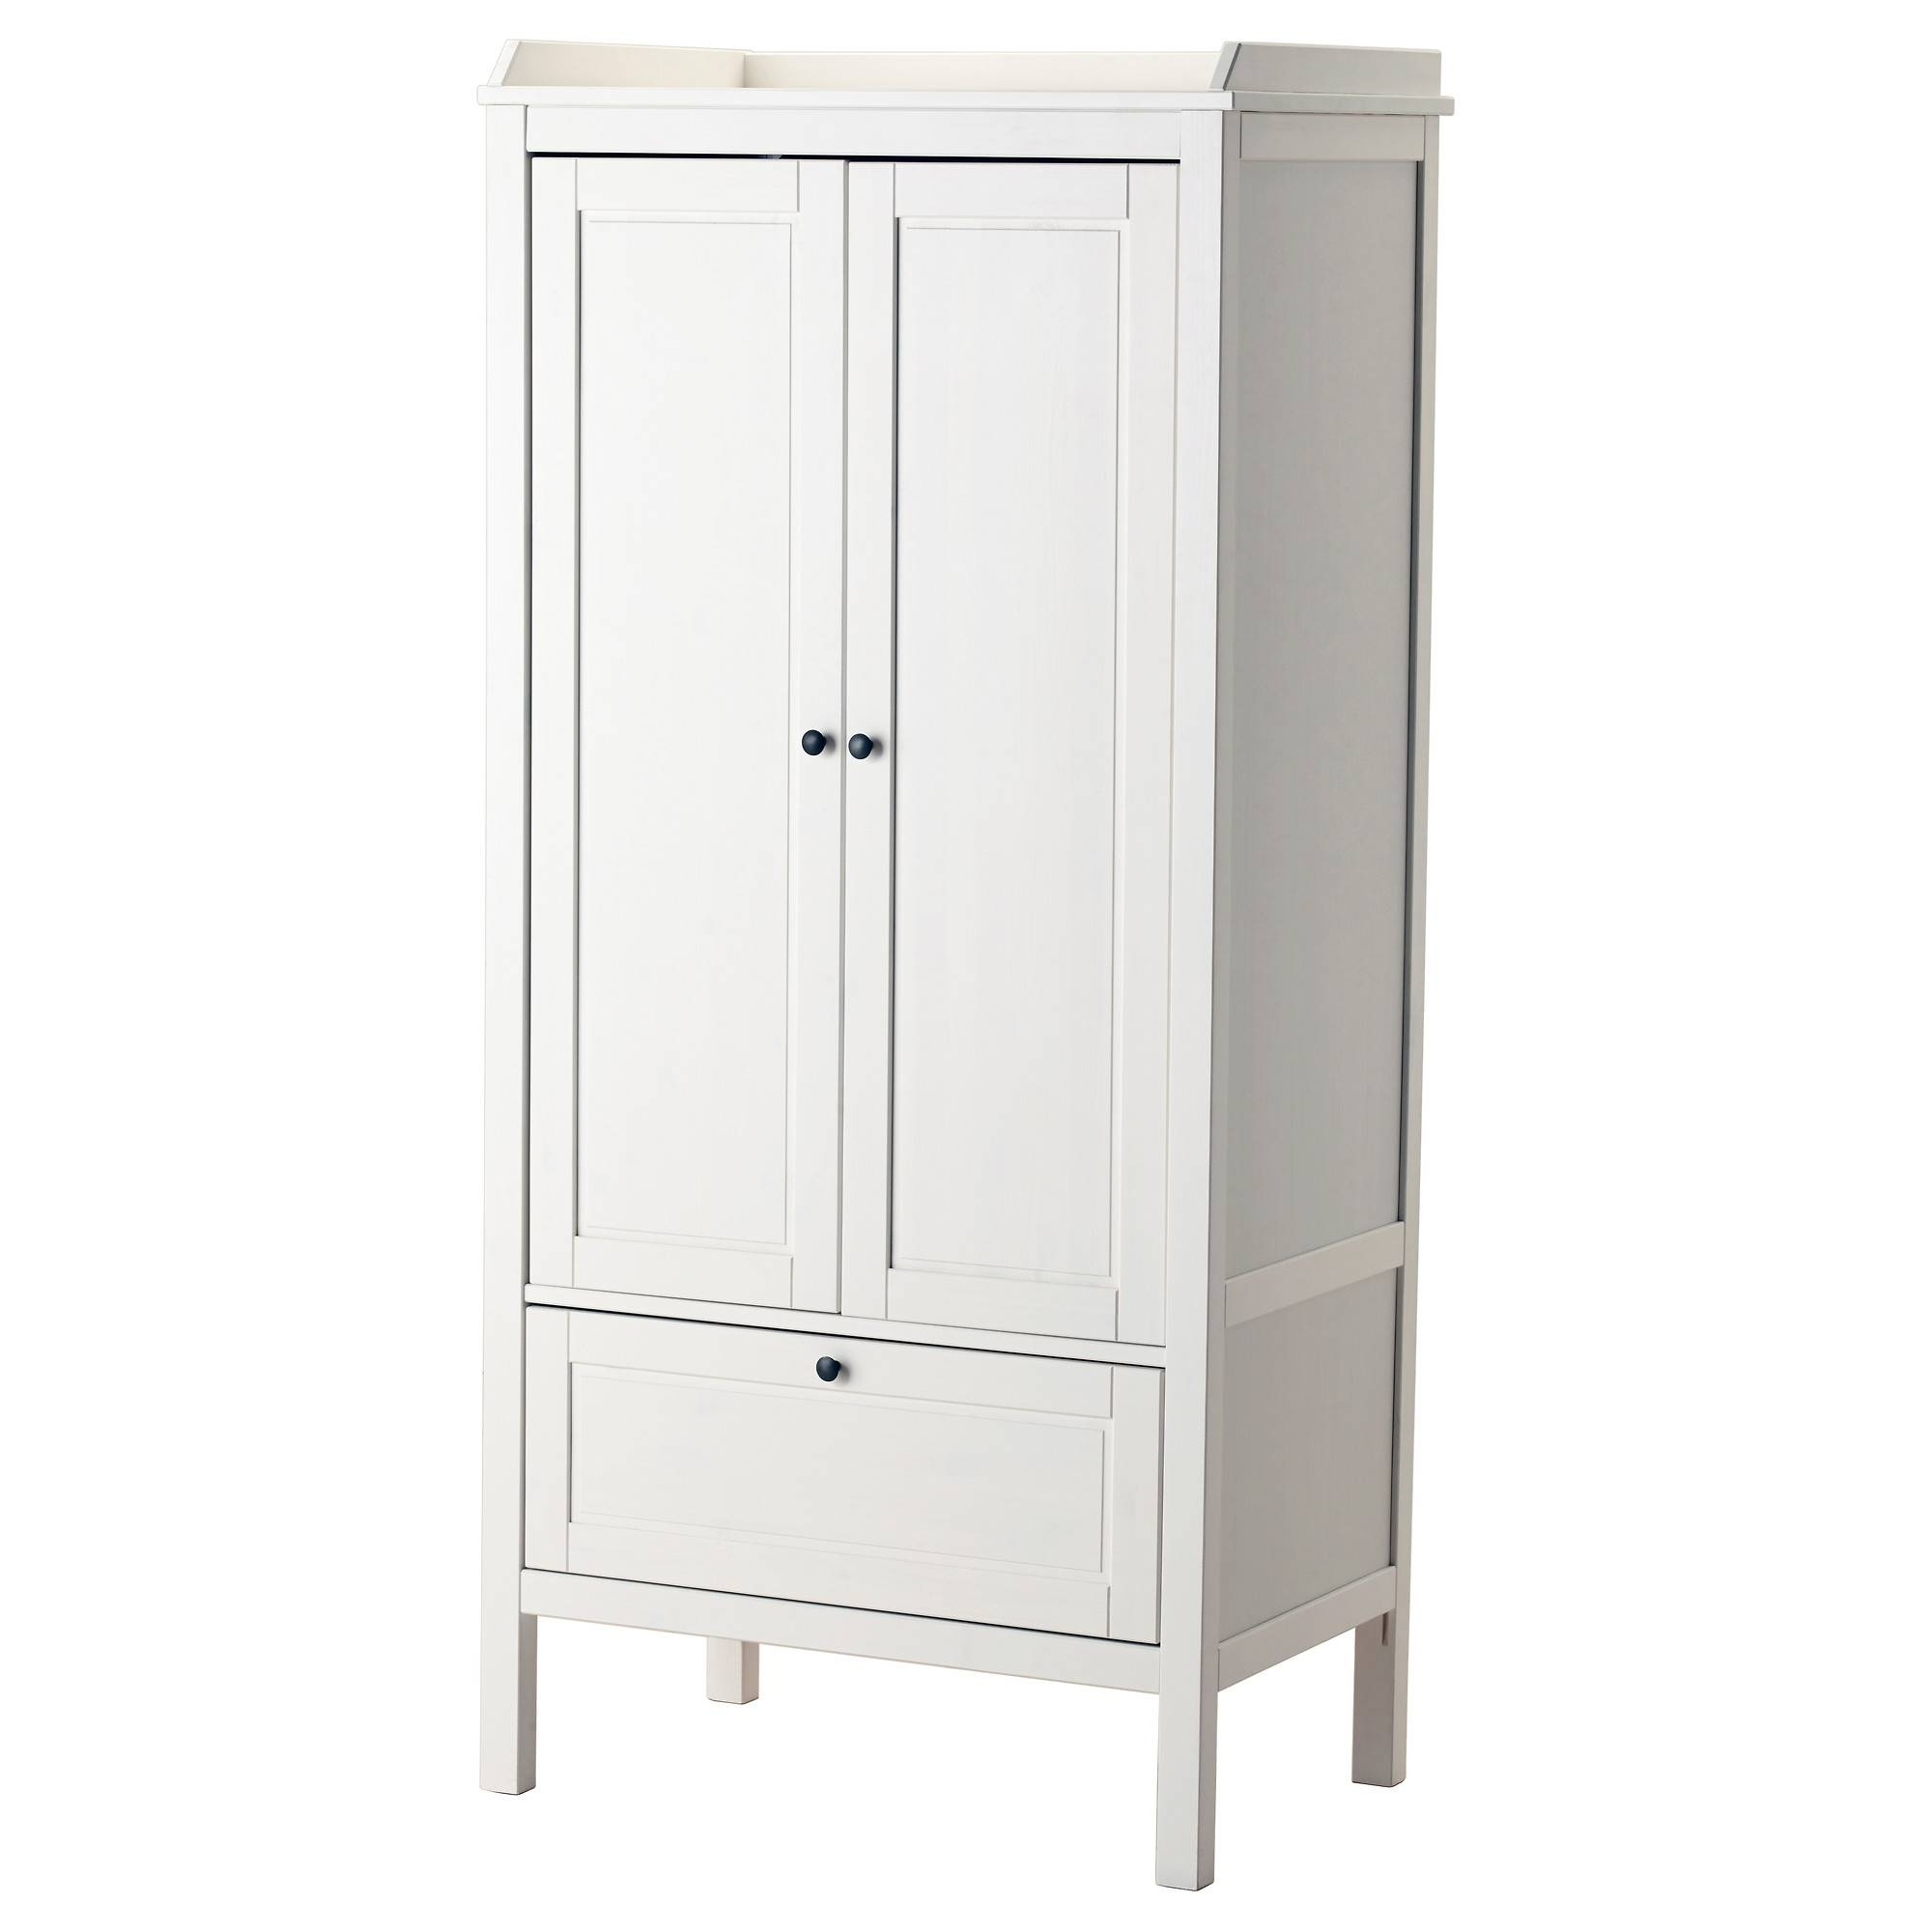 Children's Storage Furniture - Nursery Furniture - Ikea with Childrens Double Rail Wardrobes (Image 11 of 30)